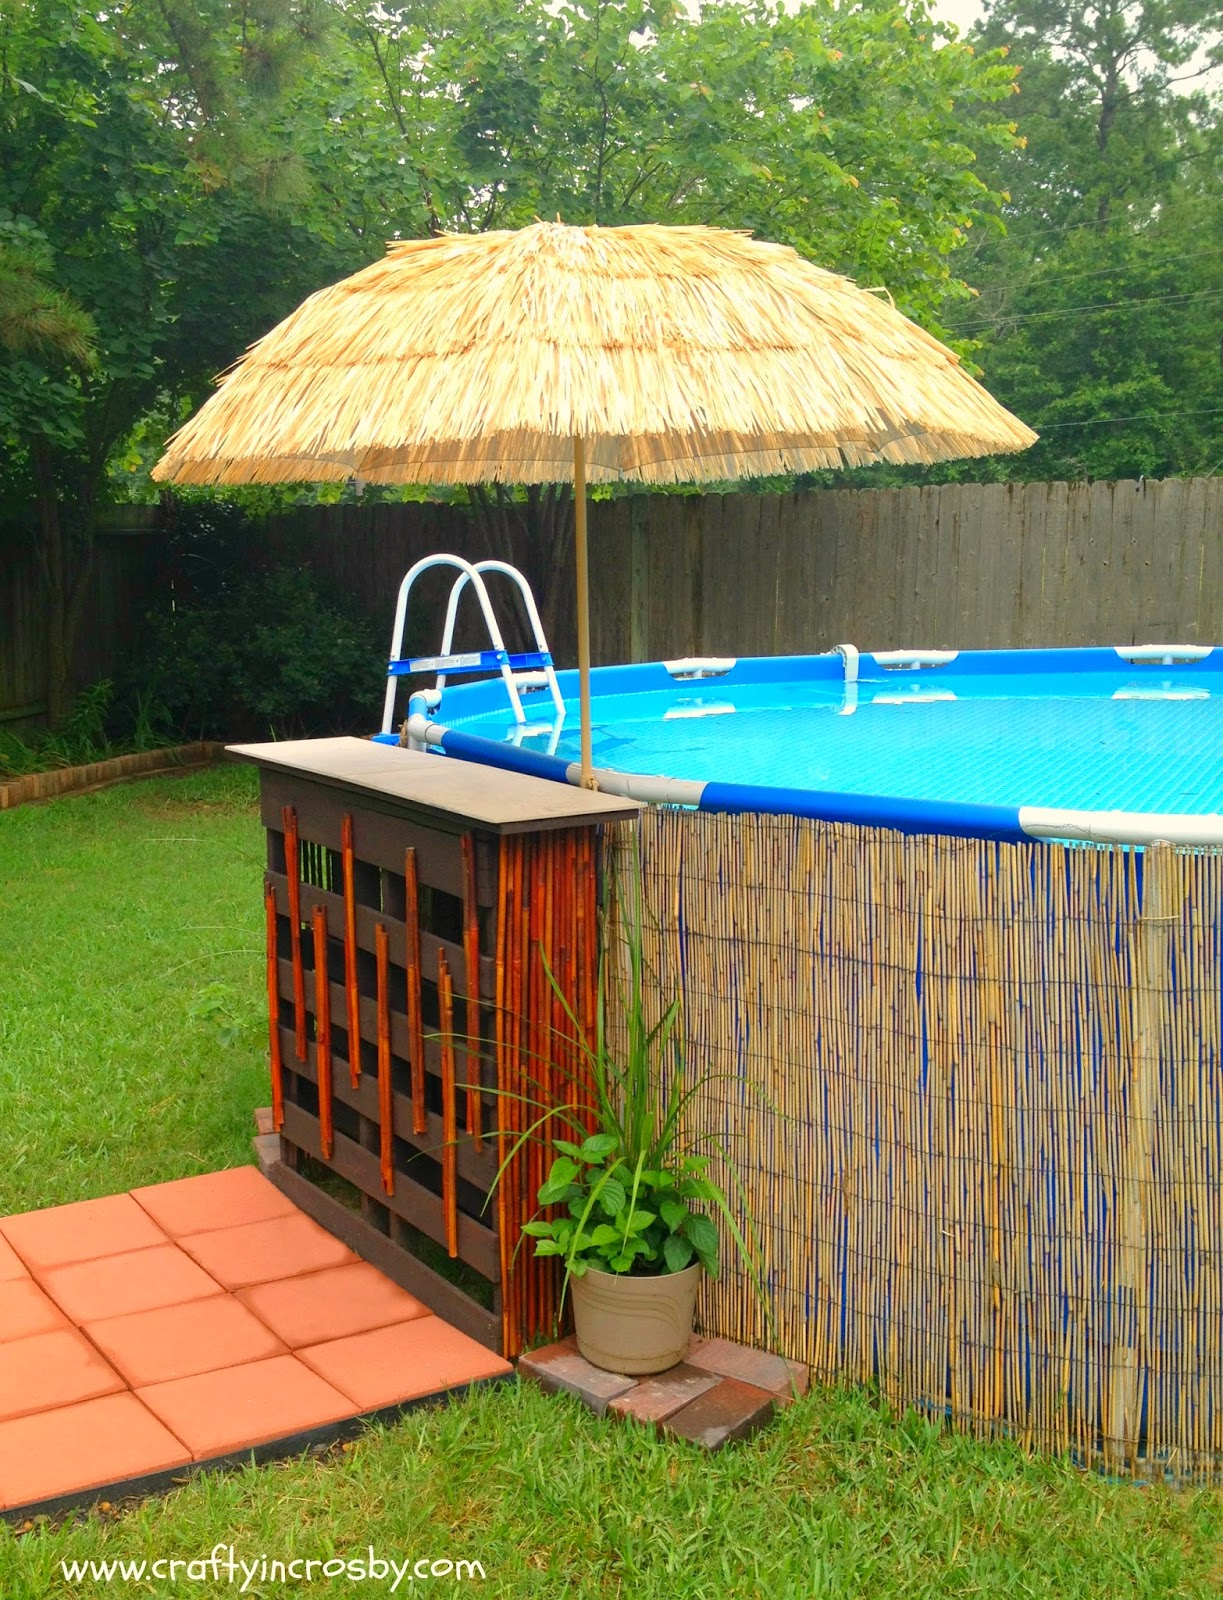 Crafty in crosby tiki bar for the redneck swimming hole - How to build an above ground swimming pool ...